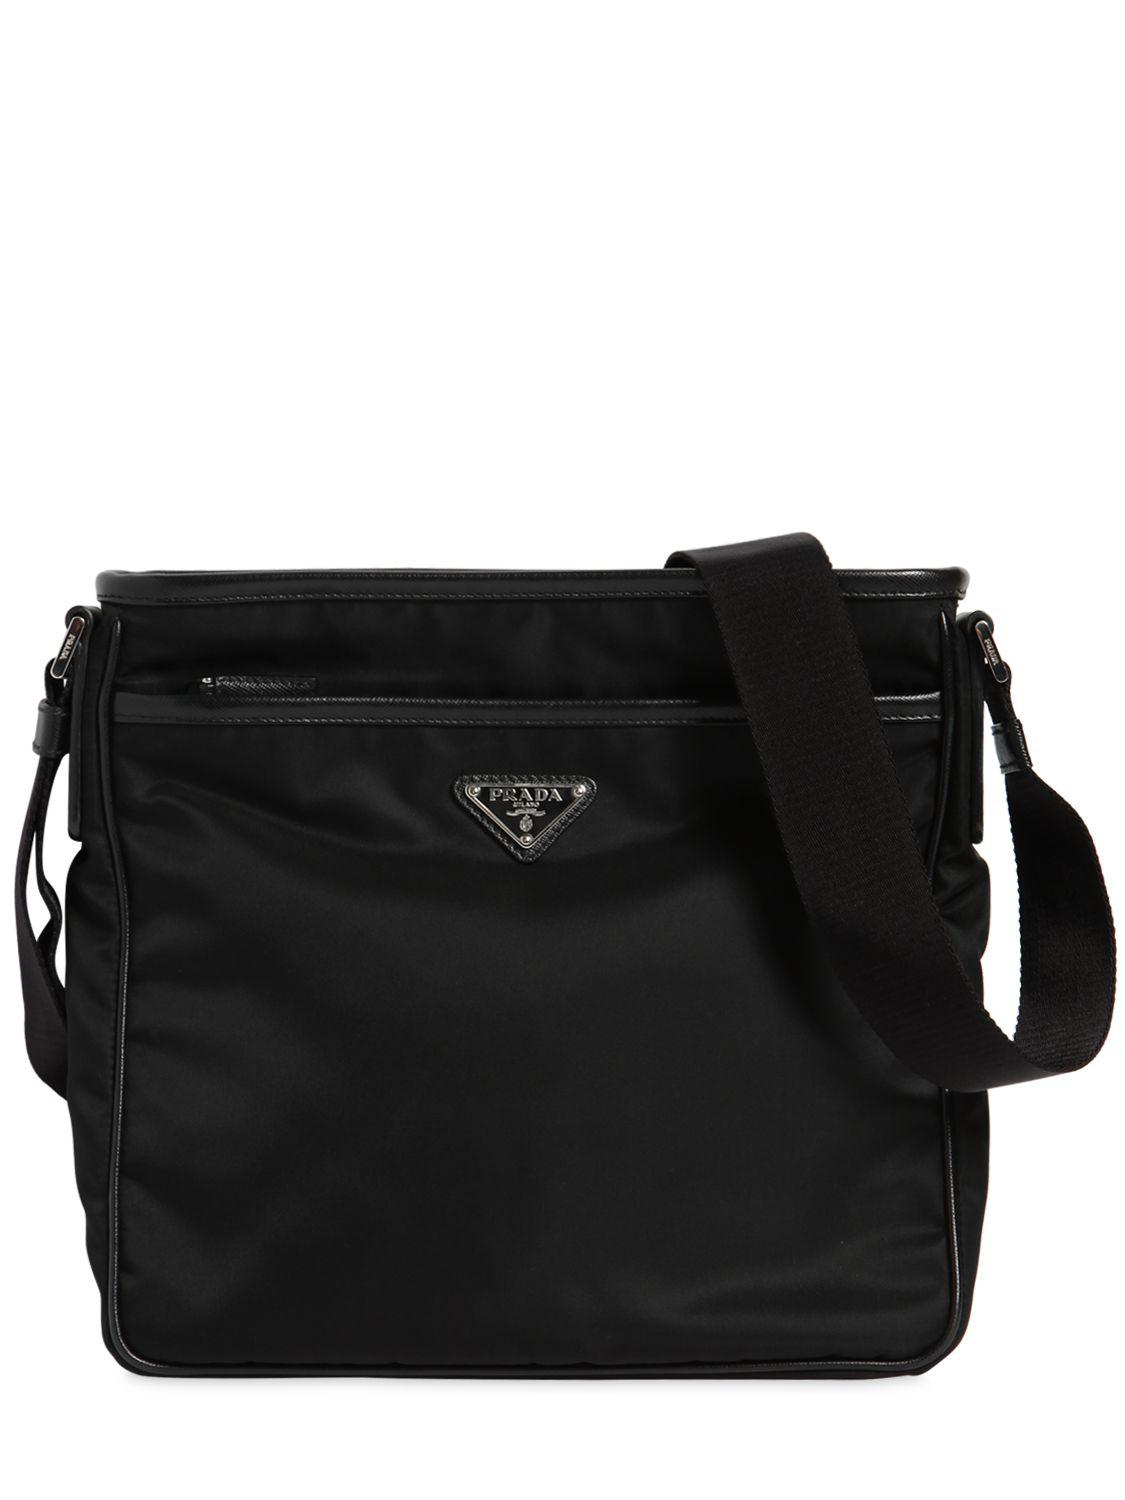 f3b717c96184 Prada - Black Nylon Crossbody Bag W/ Leather Trim for Men - Lyst. View  fullscreen